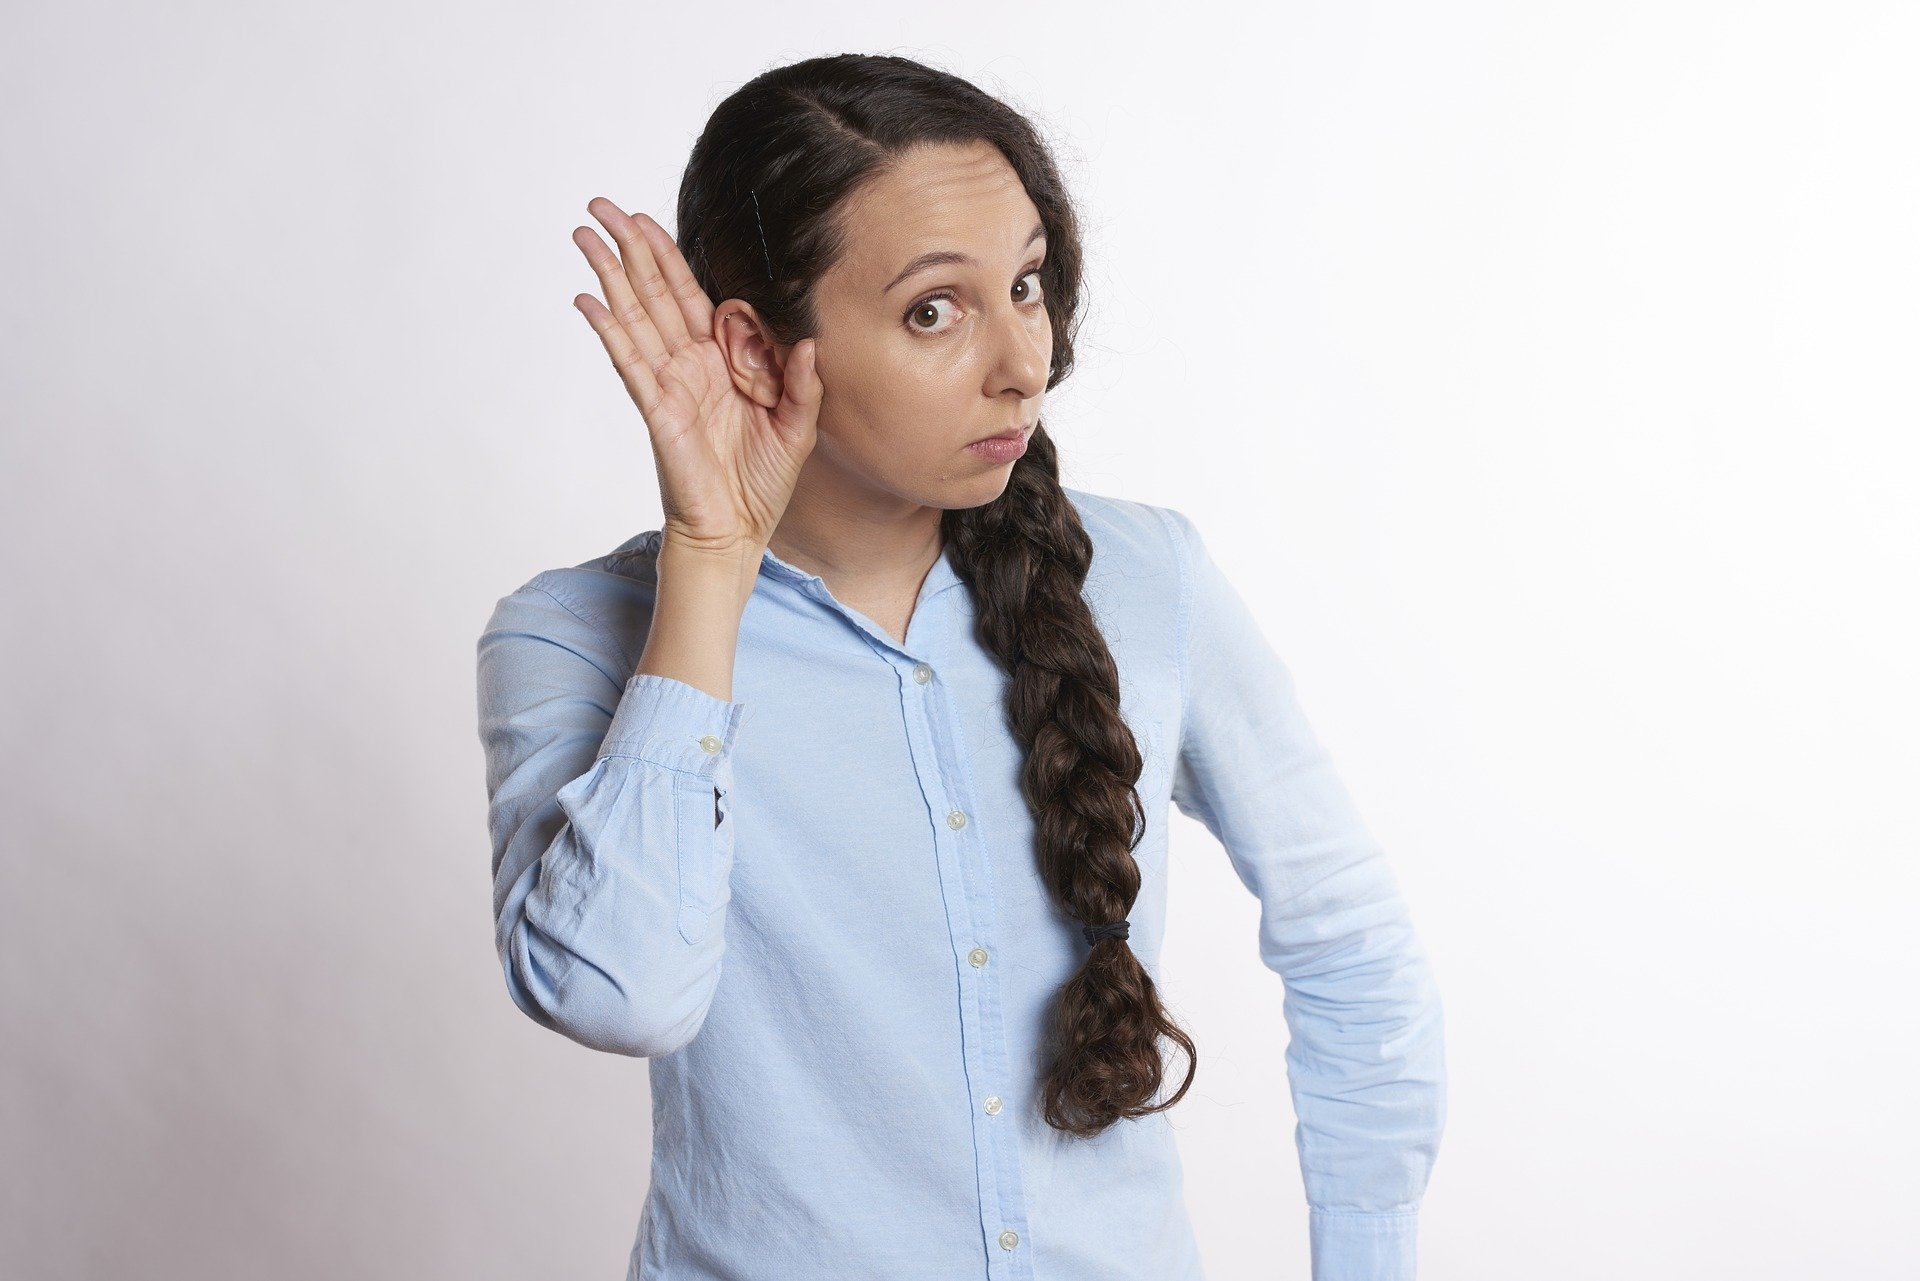 5-Ways-to-Improve-Your-Customer-Service-Listening-Skills